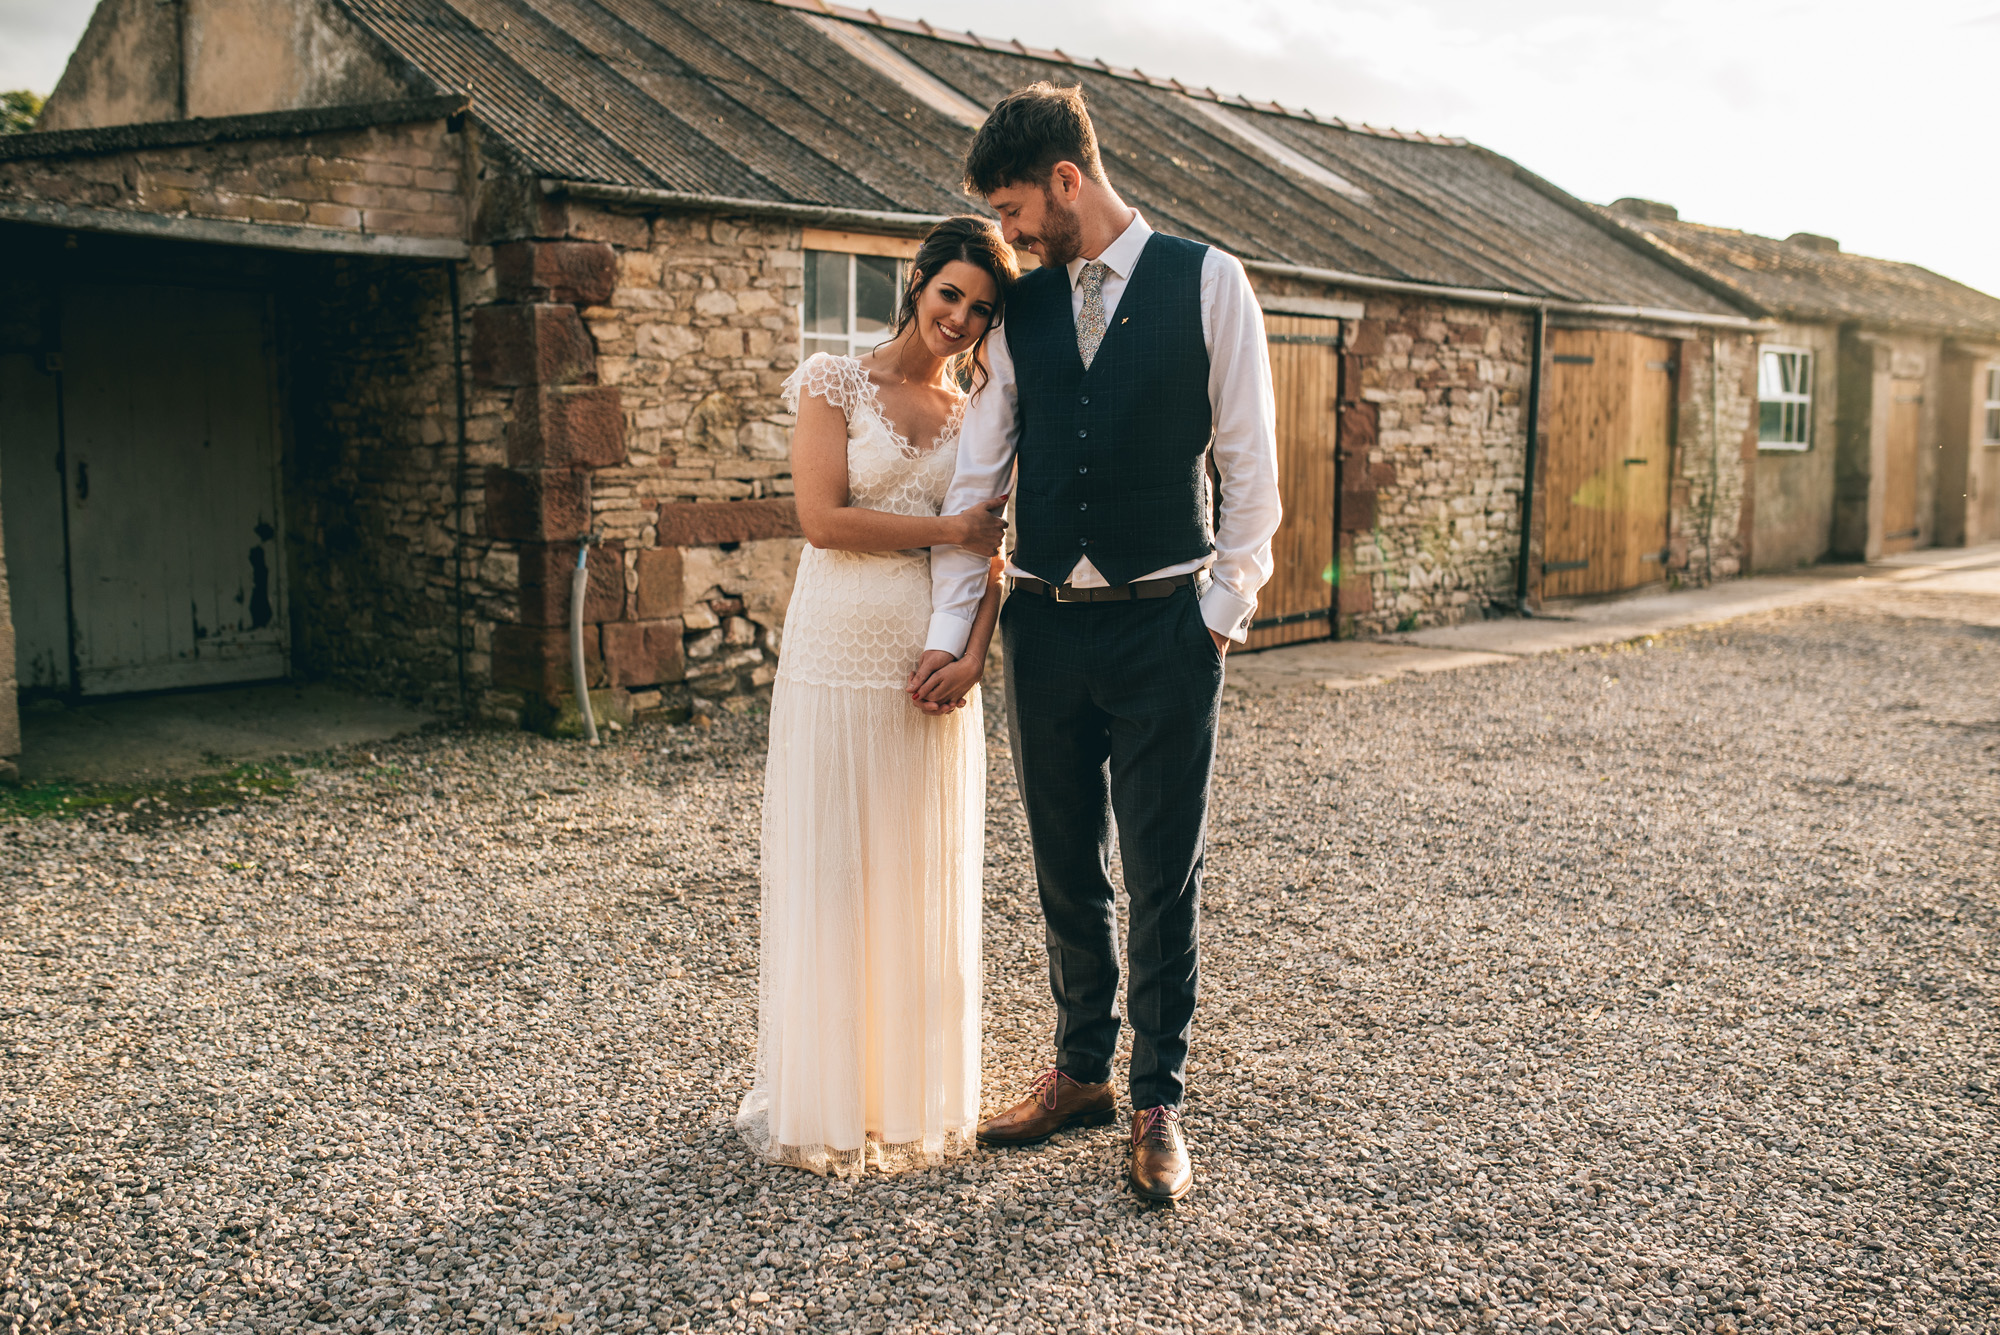 Kate-Beaumont-Sheffield-Lucy-Bohemian-Lace-Dress-Barn-Wedding-Cumbria-48.jpg